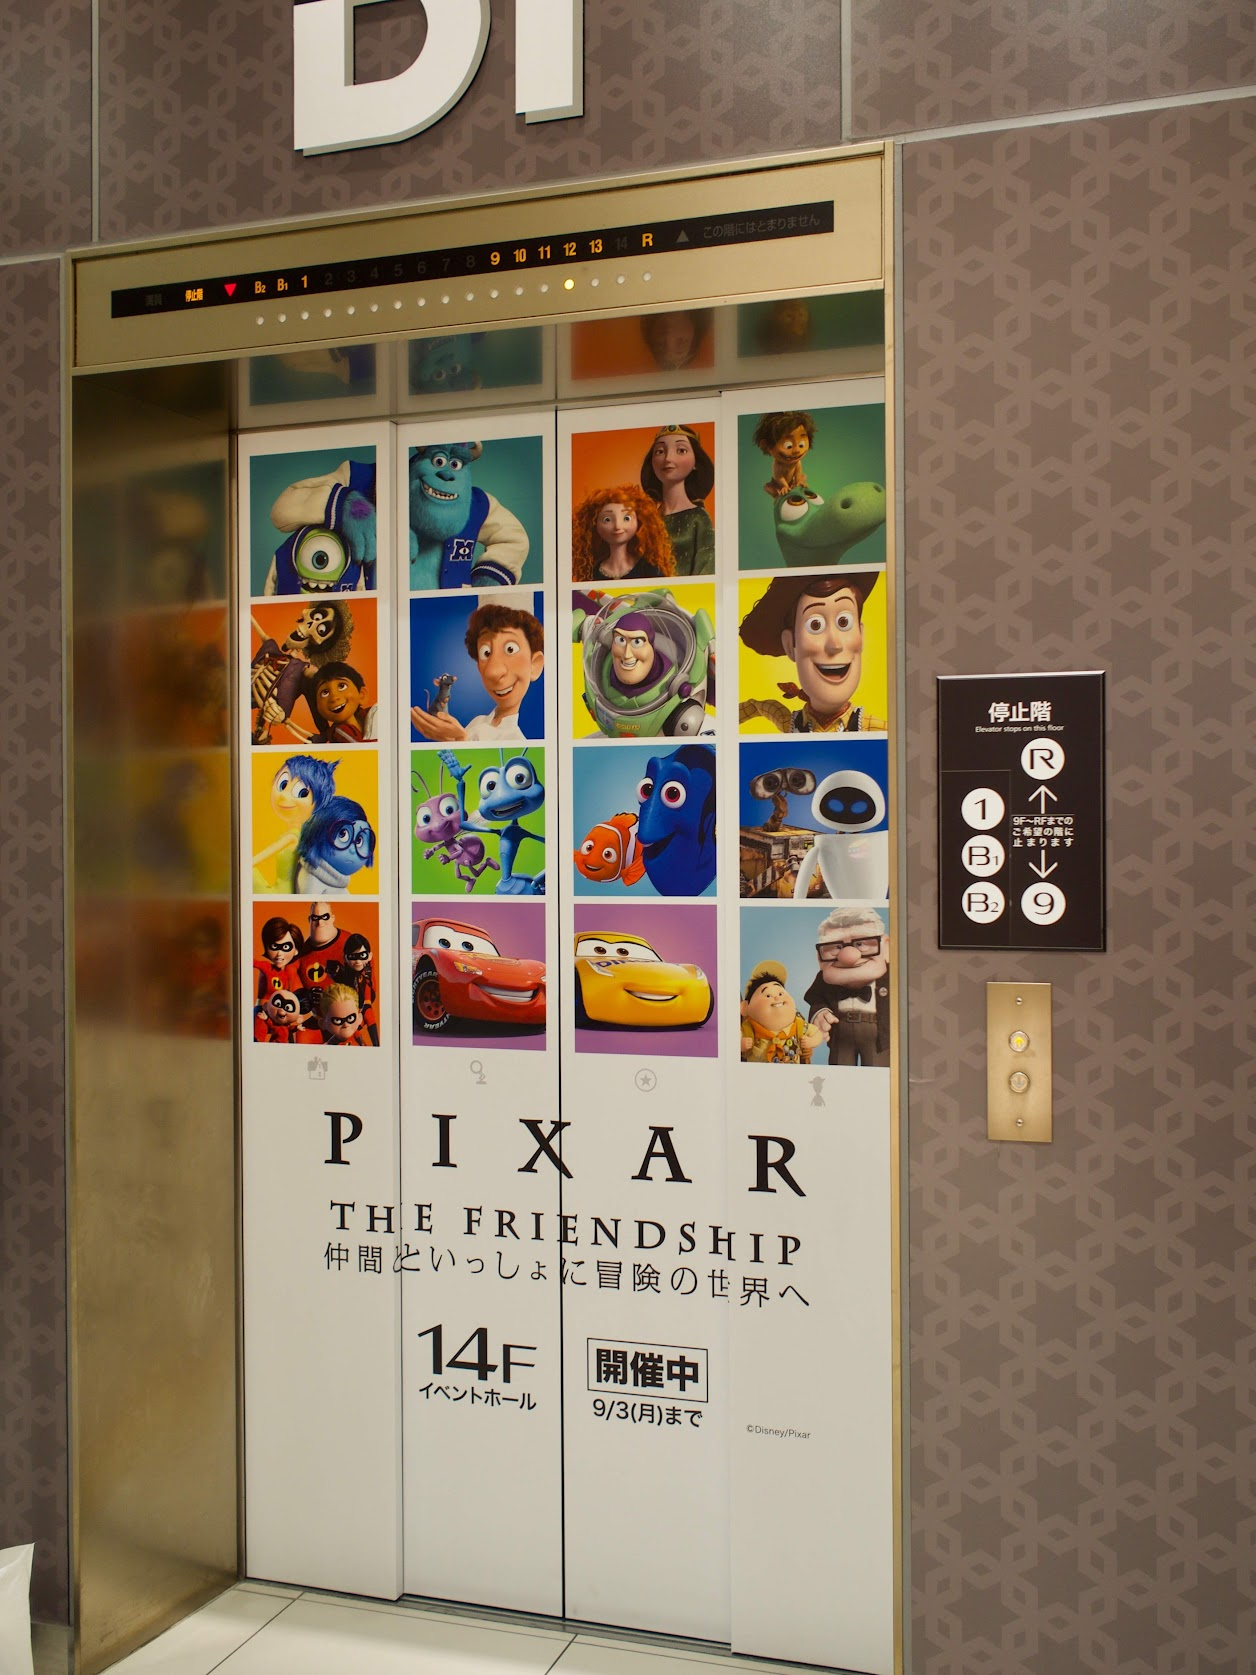 Pixar The Friendship Osaka